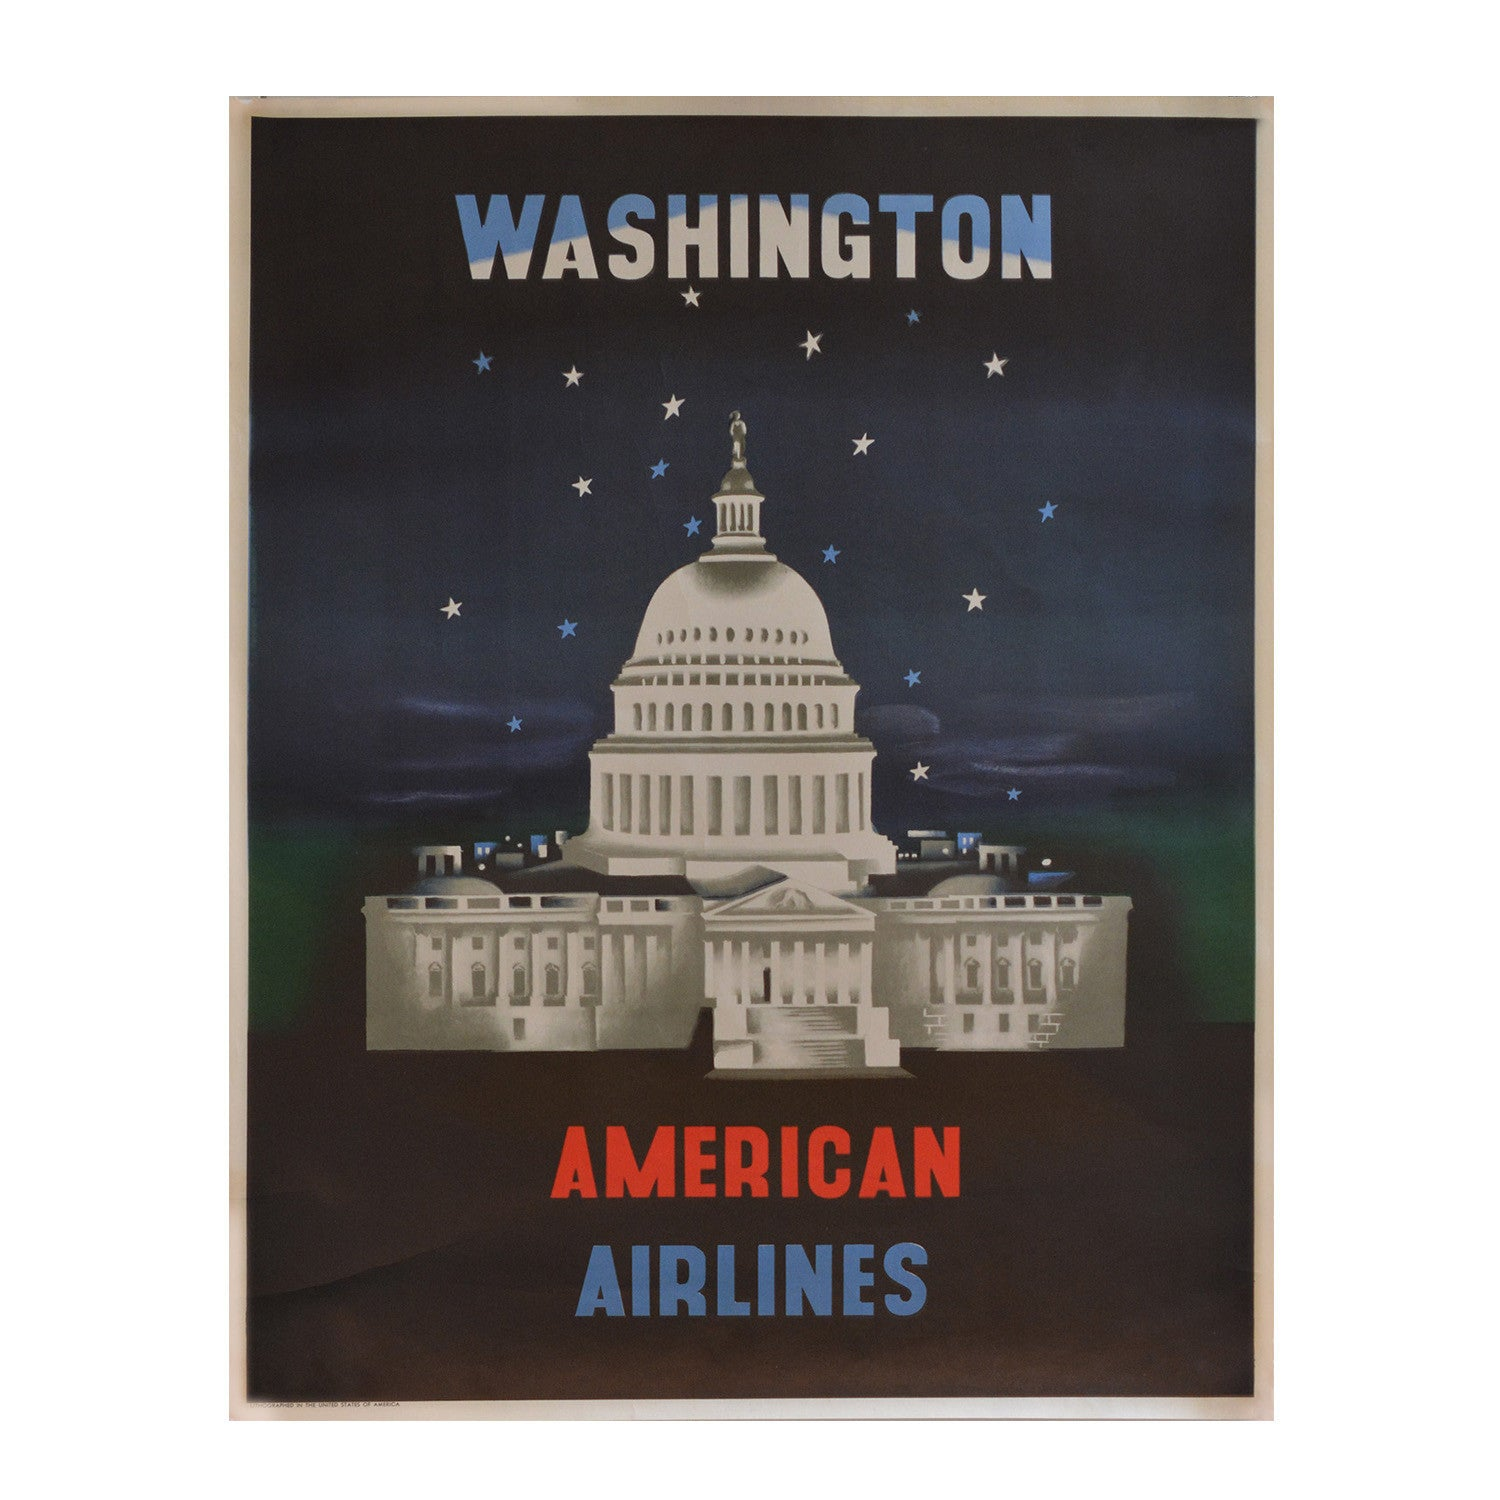 Original McKnight Kauffer American Airlines Poster, Washington